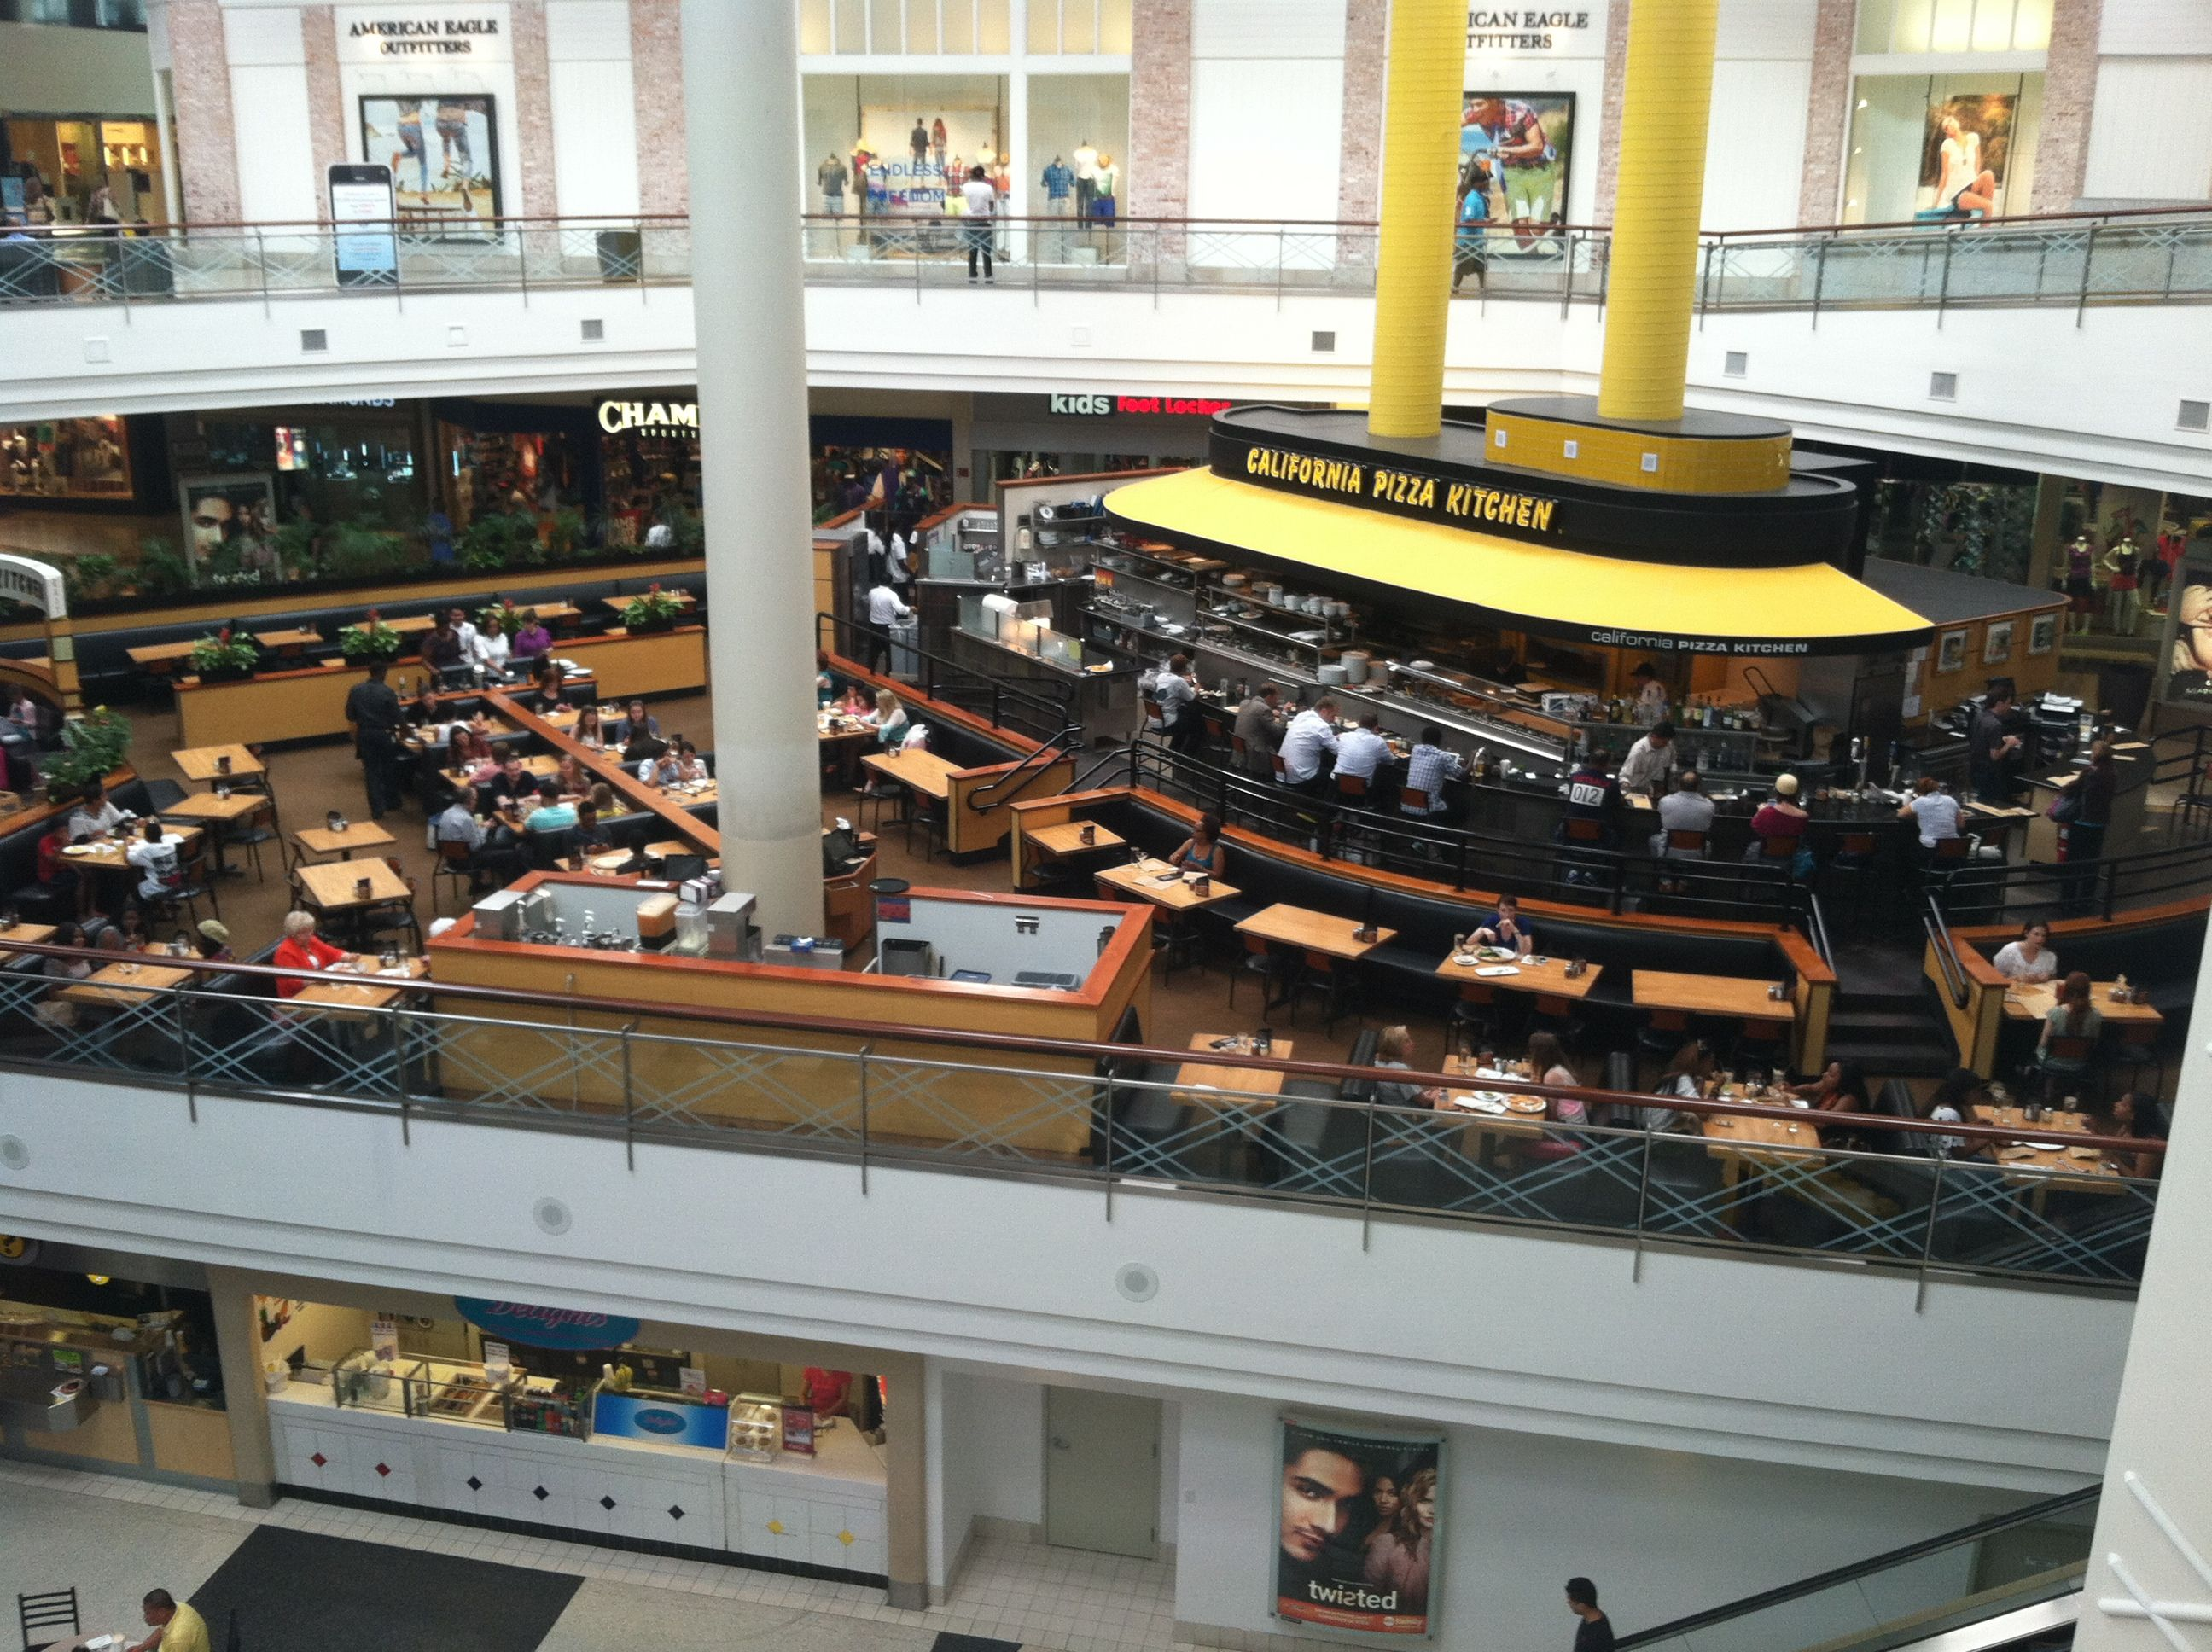 california pizza kitchen in lenox square mall lenox marta station